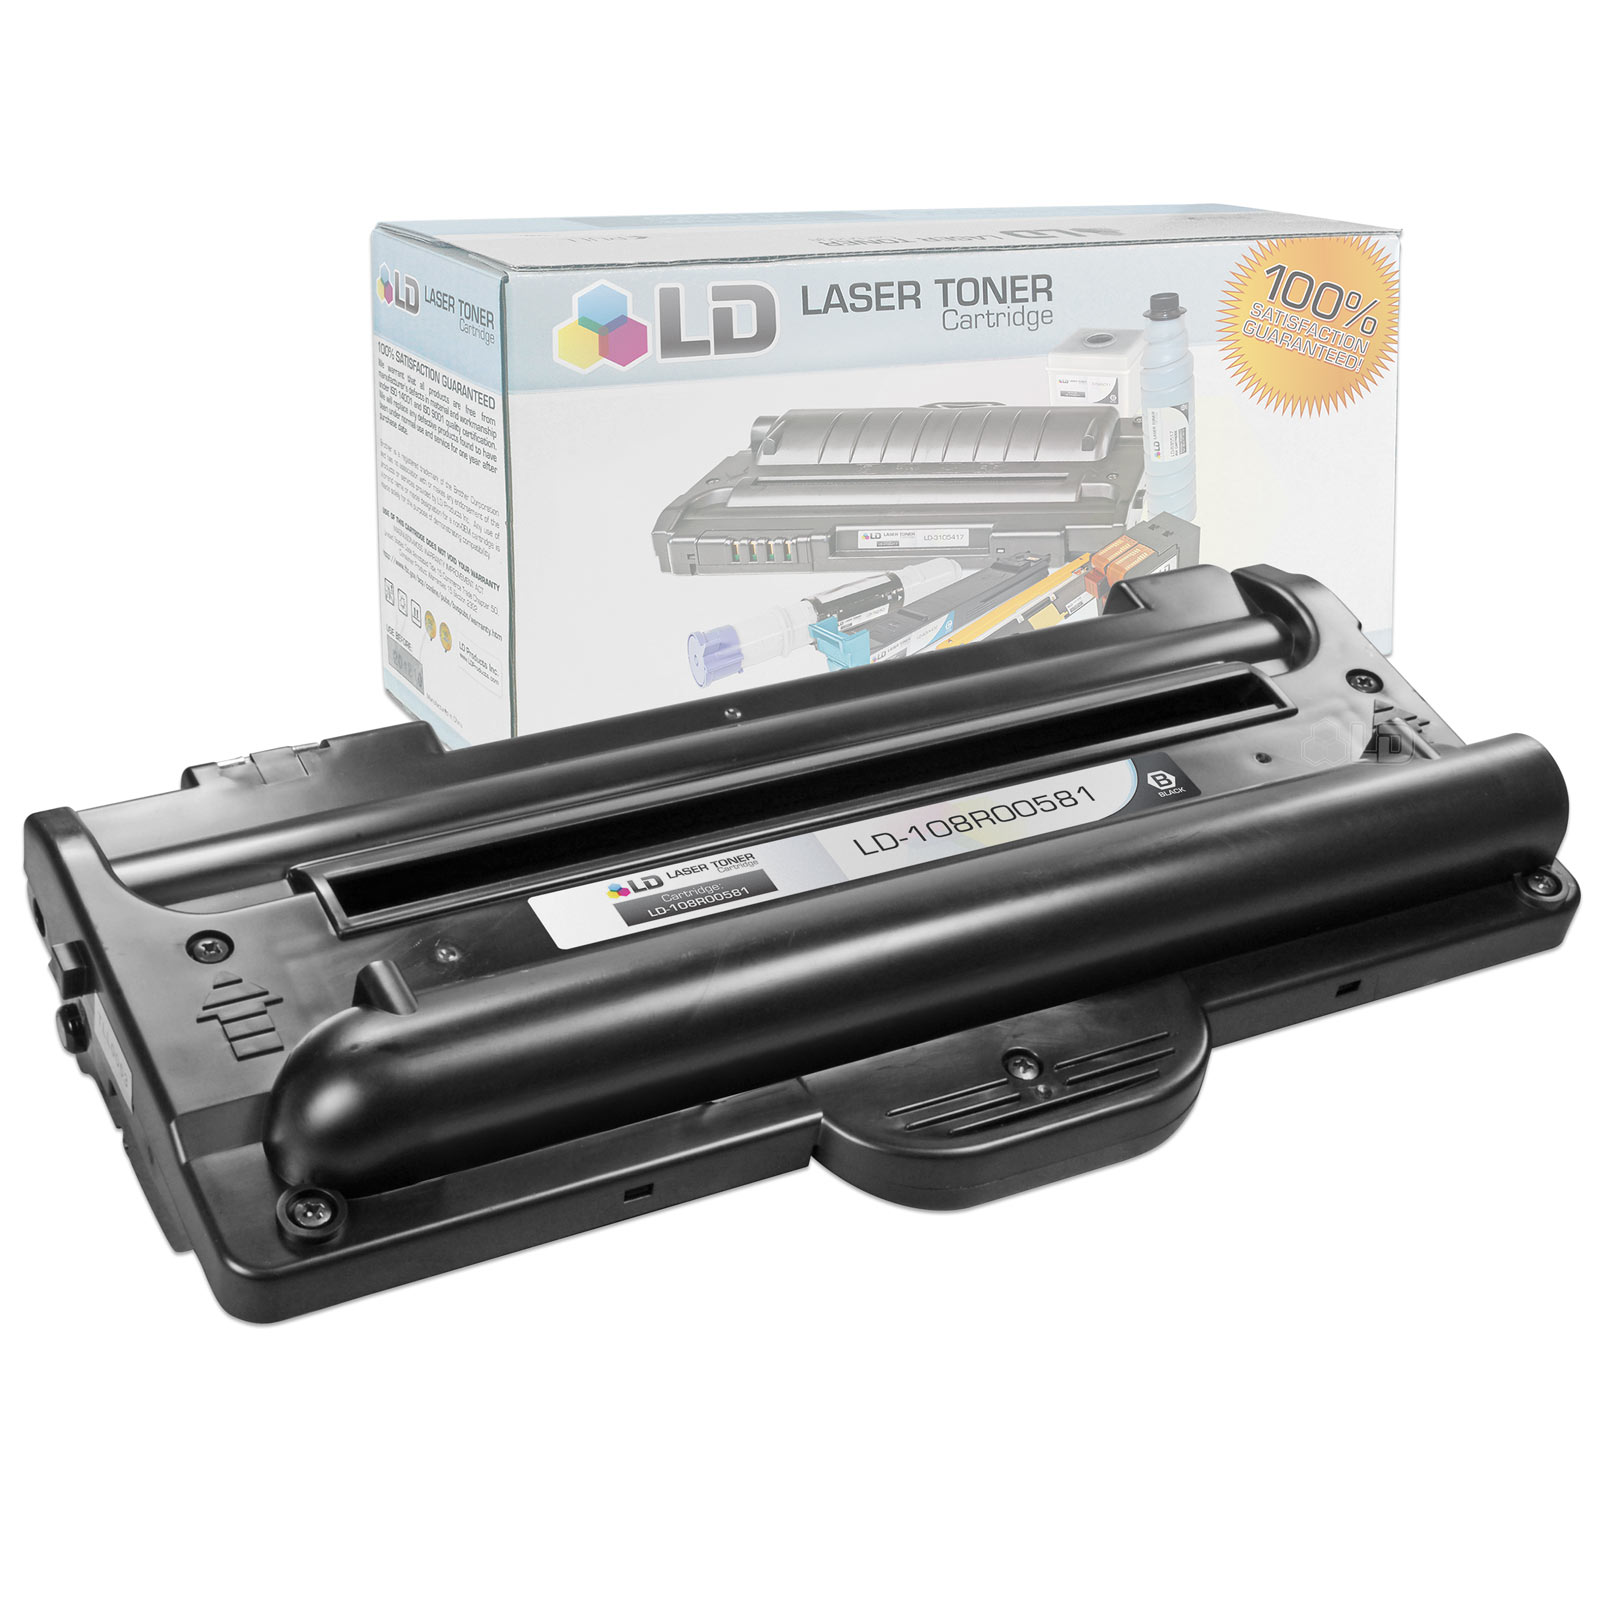 LD Compatible Replacement for Samsung SCX-4100D3 Black Laser Toner Cartridge for use in Samsung SCX-4100 Printer